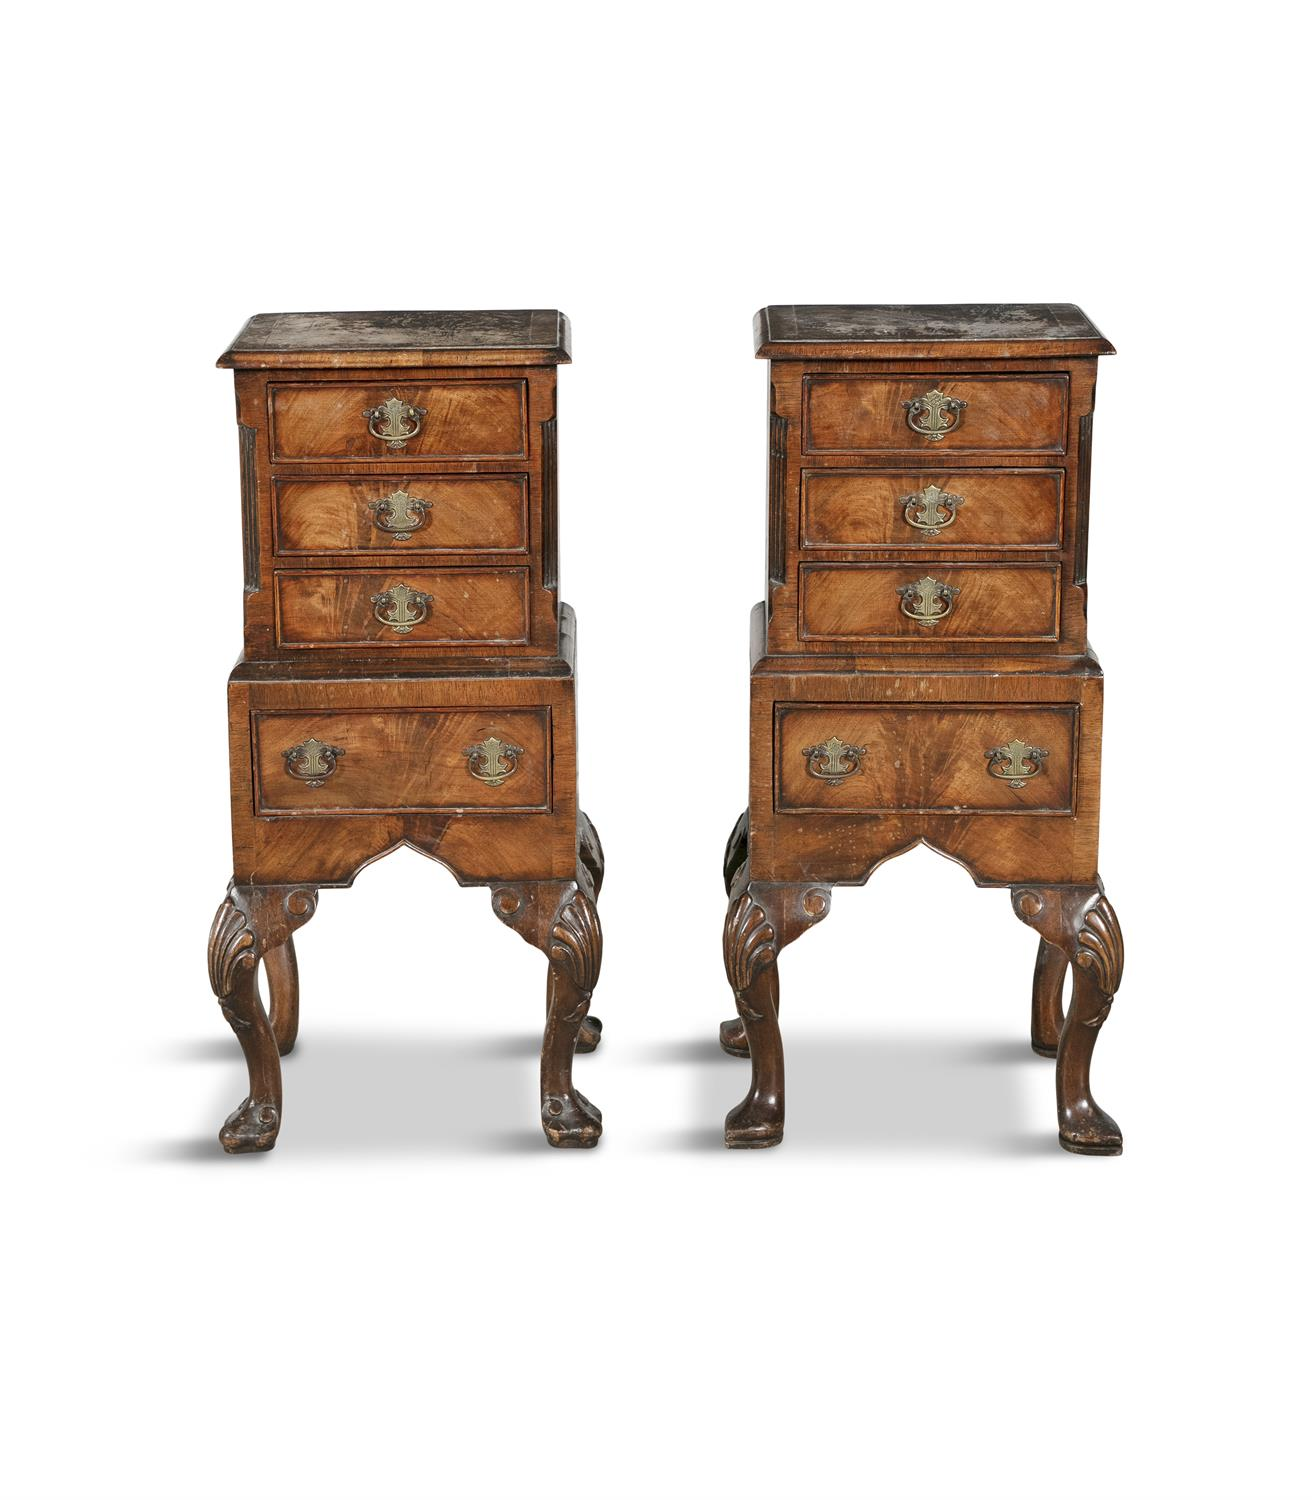 A PAIR OF 19TH CENTURY COMPACT MAHOGANY LOCKERS, in the form of miniature cabinets on stand,